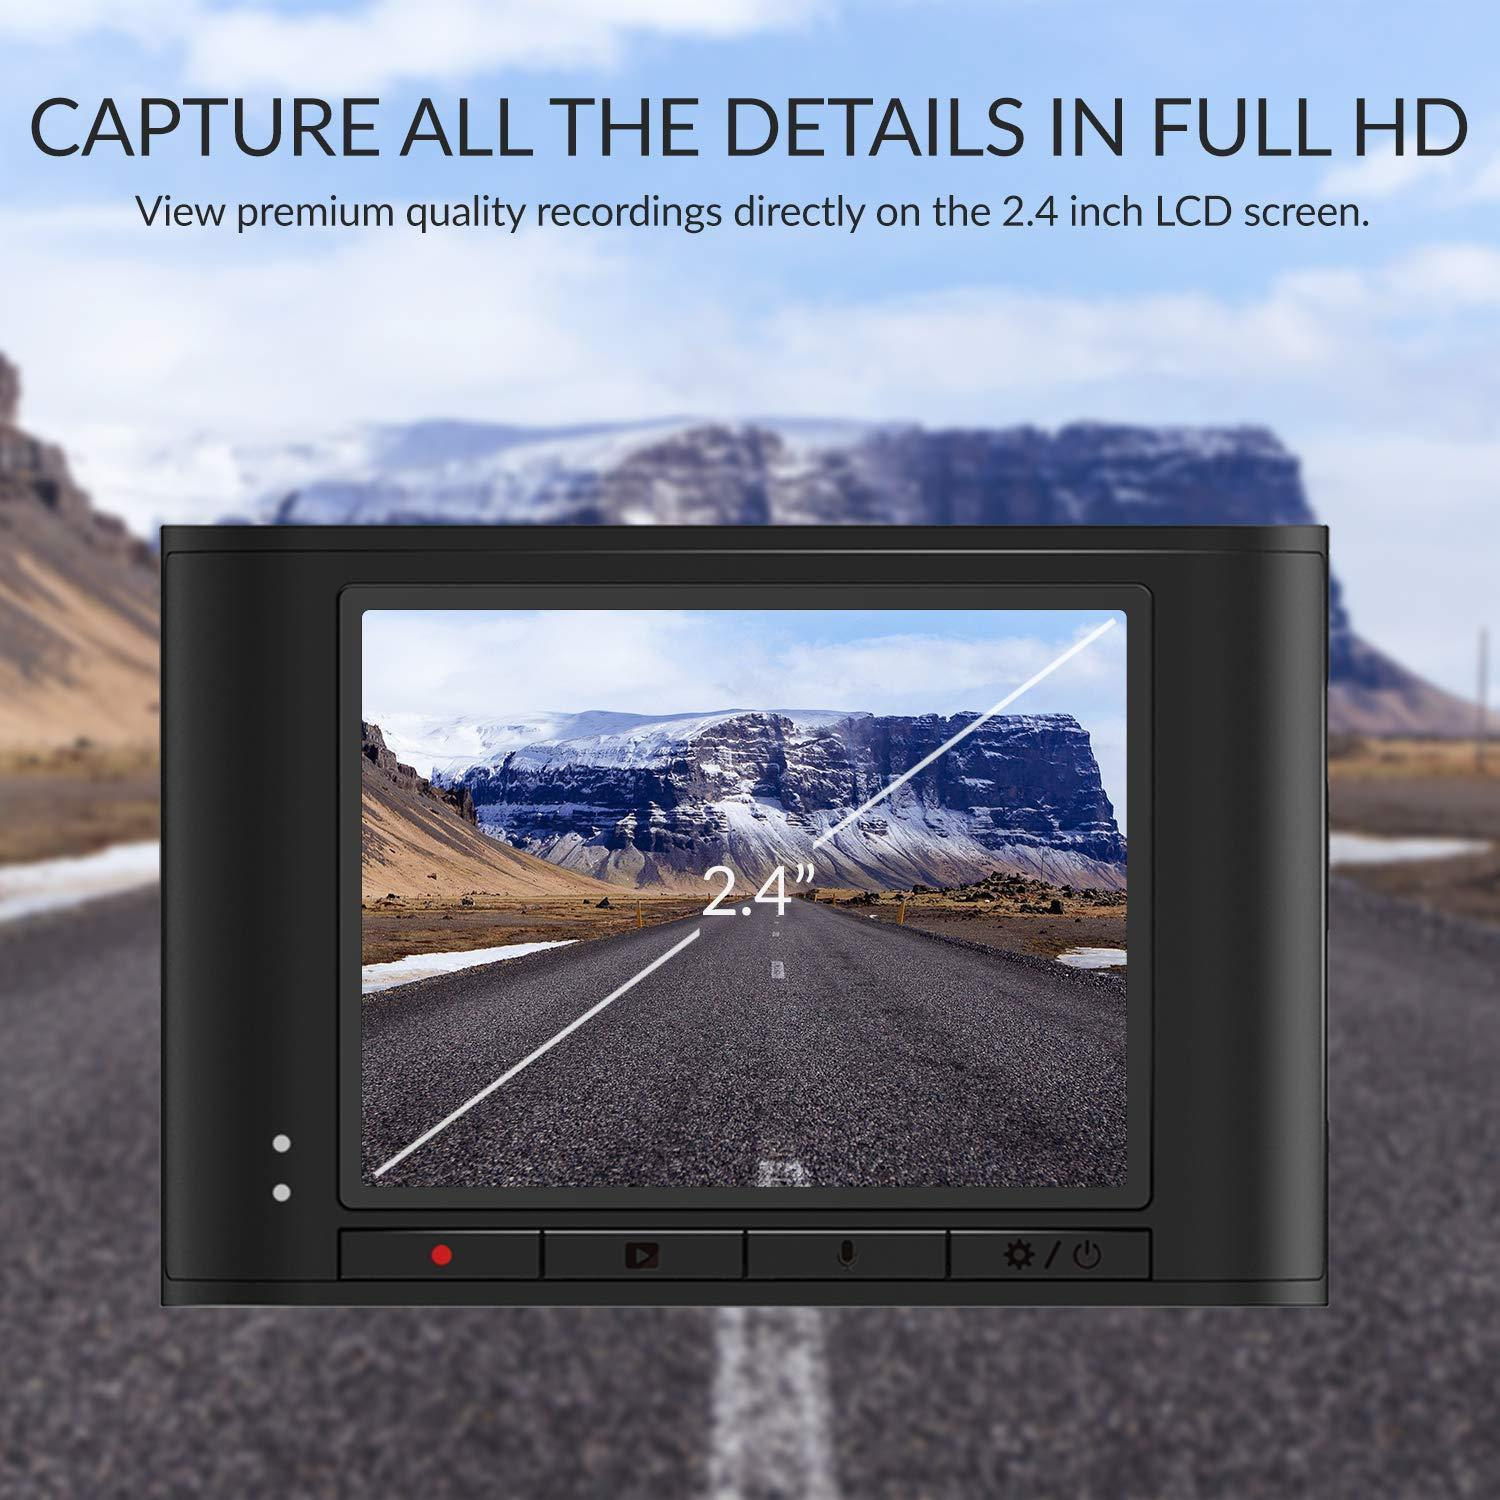 Capture all the details in full HD - View premium quality recordings directly on the 2.4 inch LCD screen